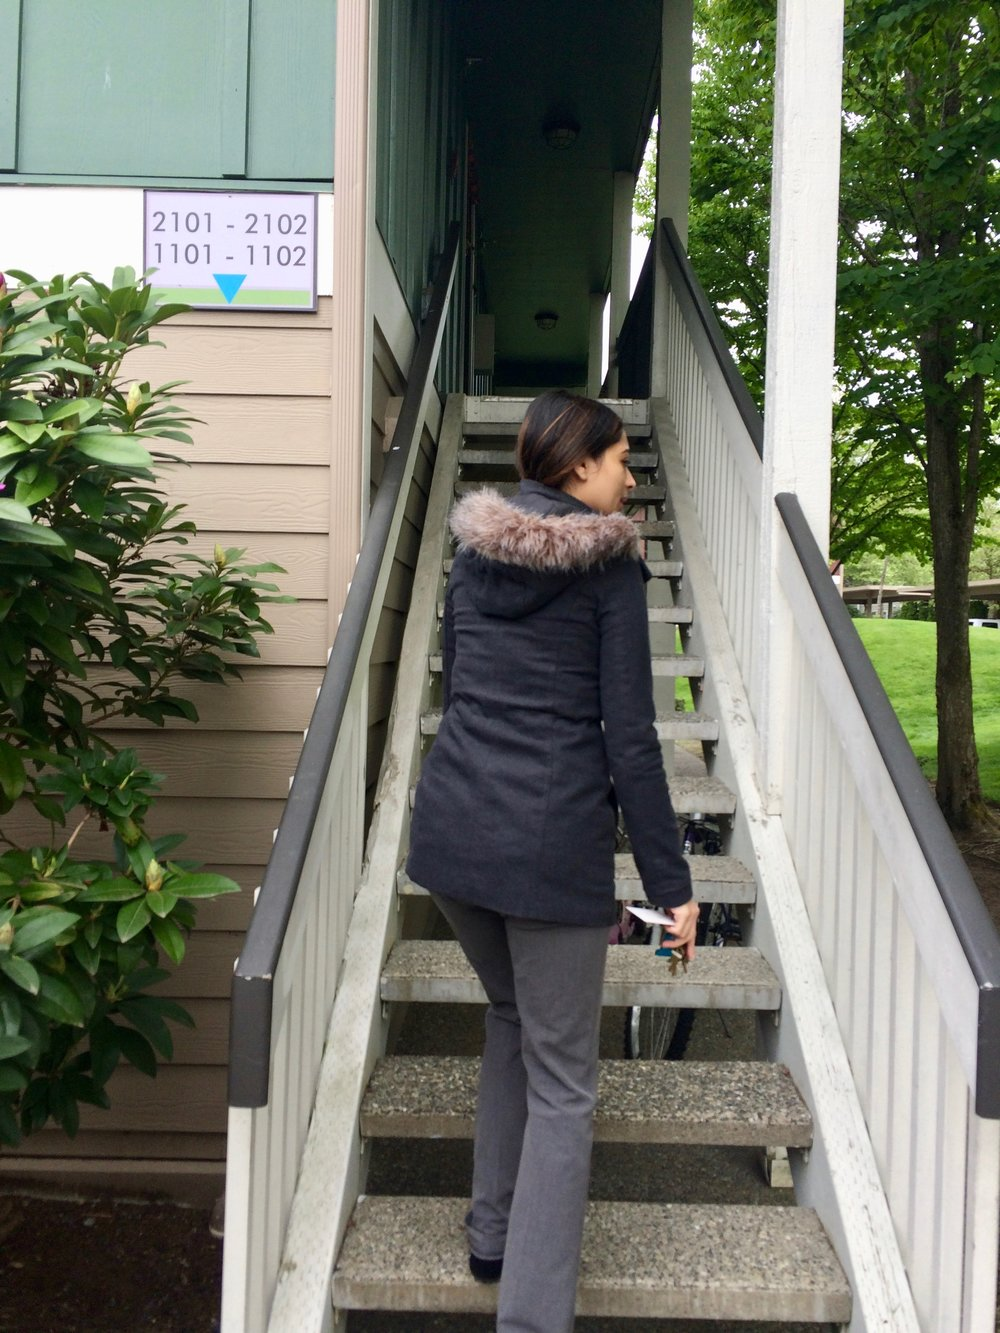 Naaz shows the Whelans a nice apartment in Redmond Washington.